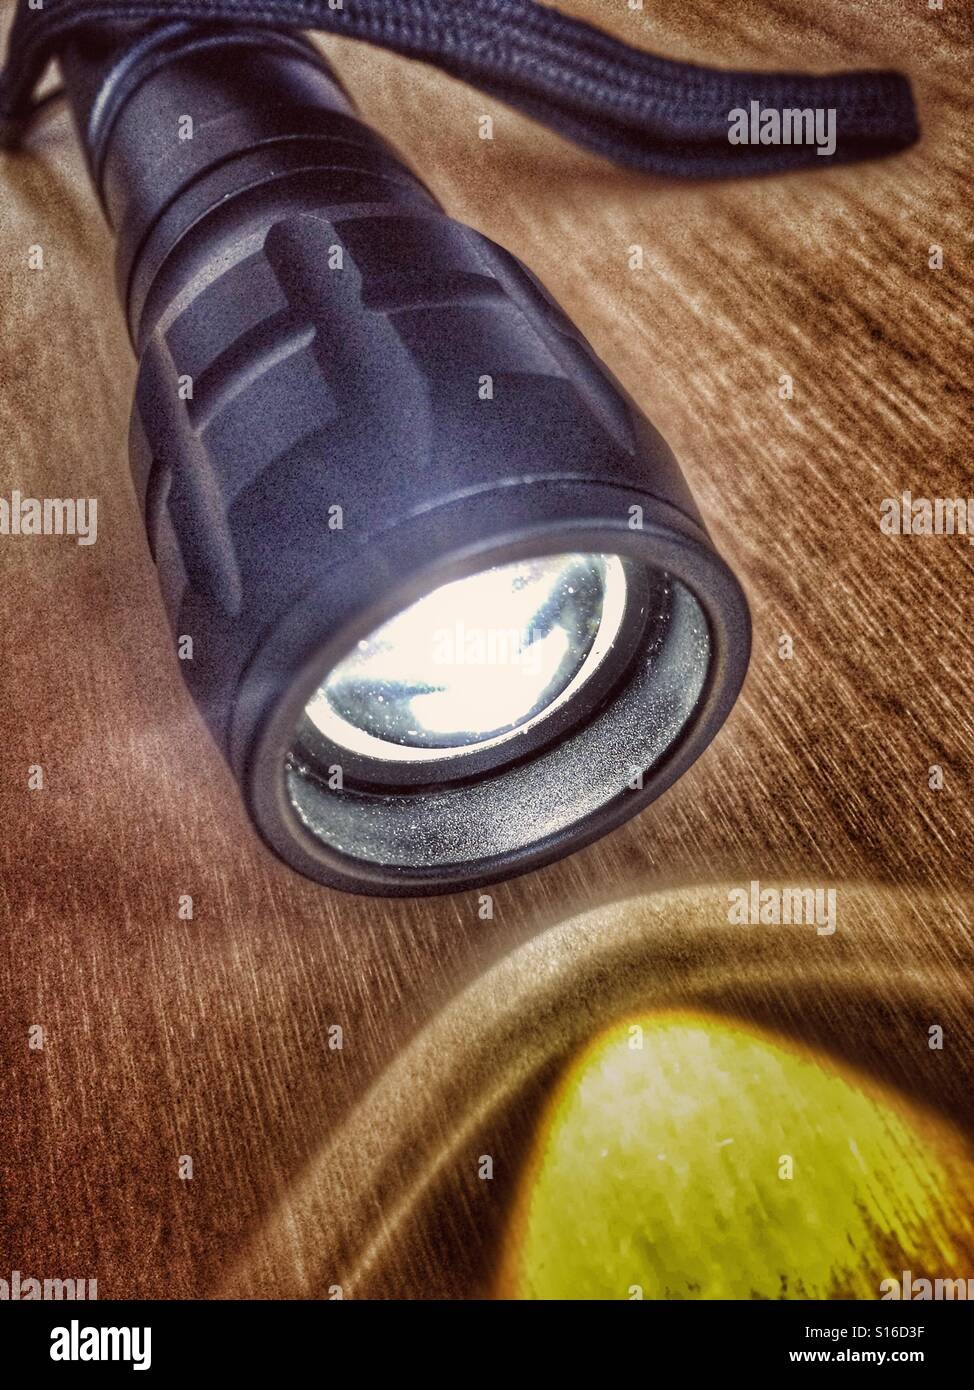 Electric torch - Stock Image